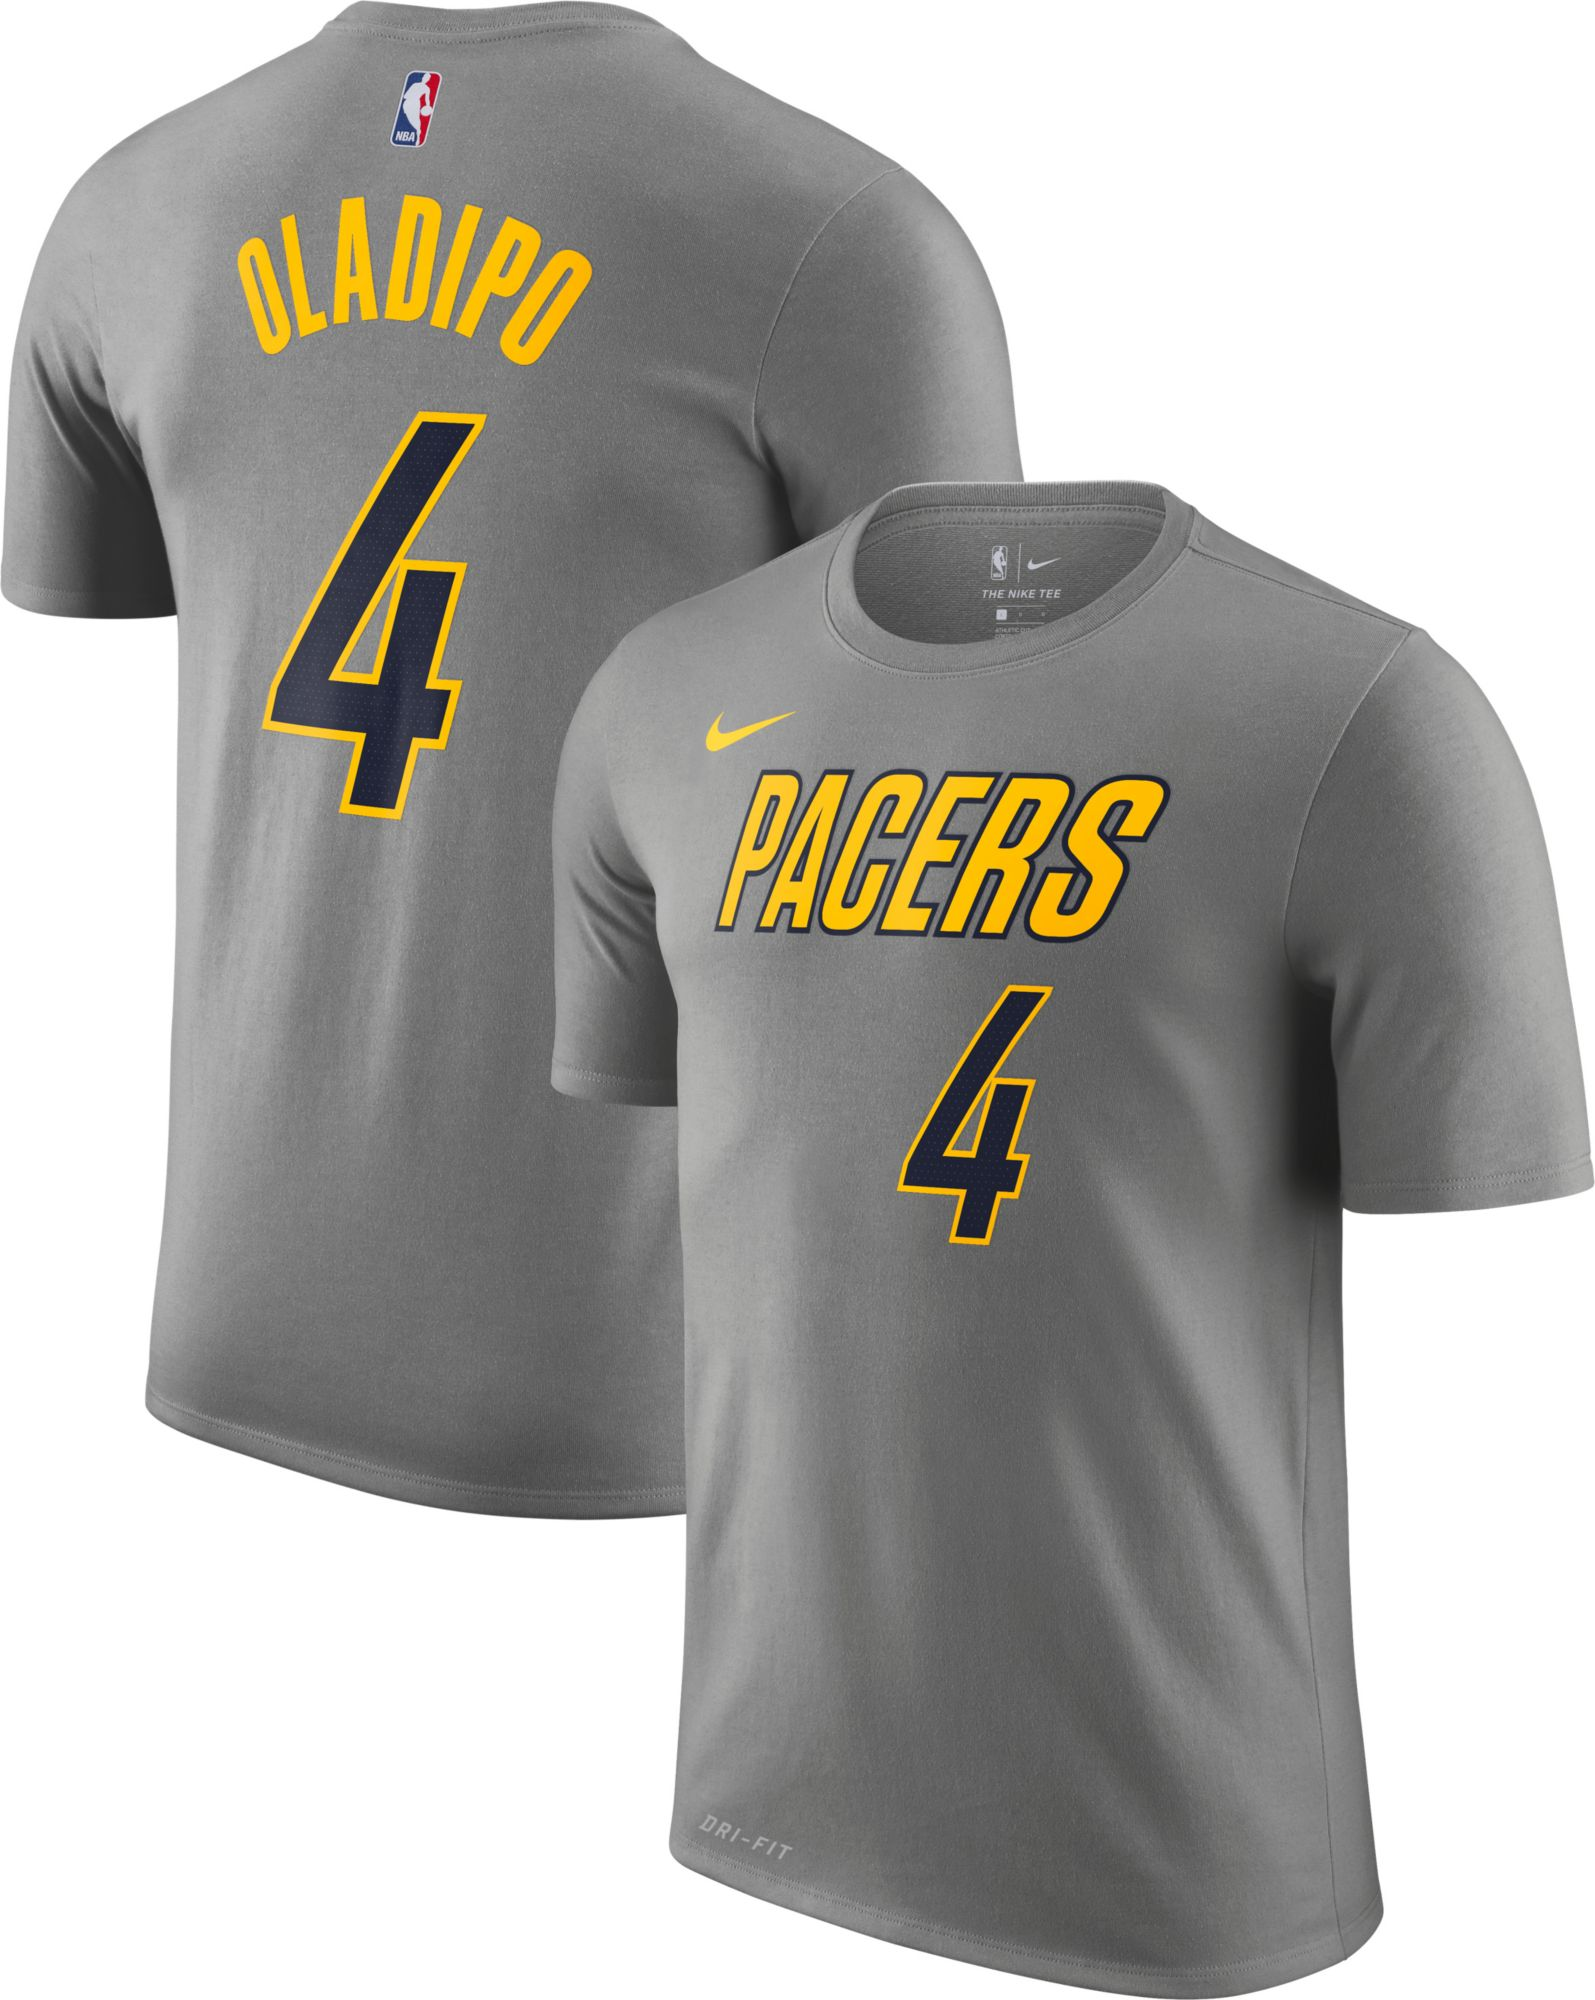 a7e7e1155 Nike Youth Indiana Pacers Victor Oladipo Dri-FIT City Edition T-Shirt